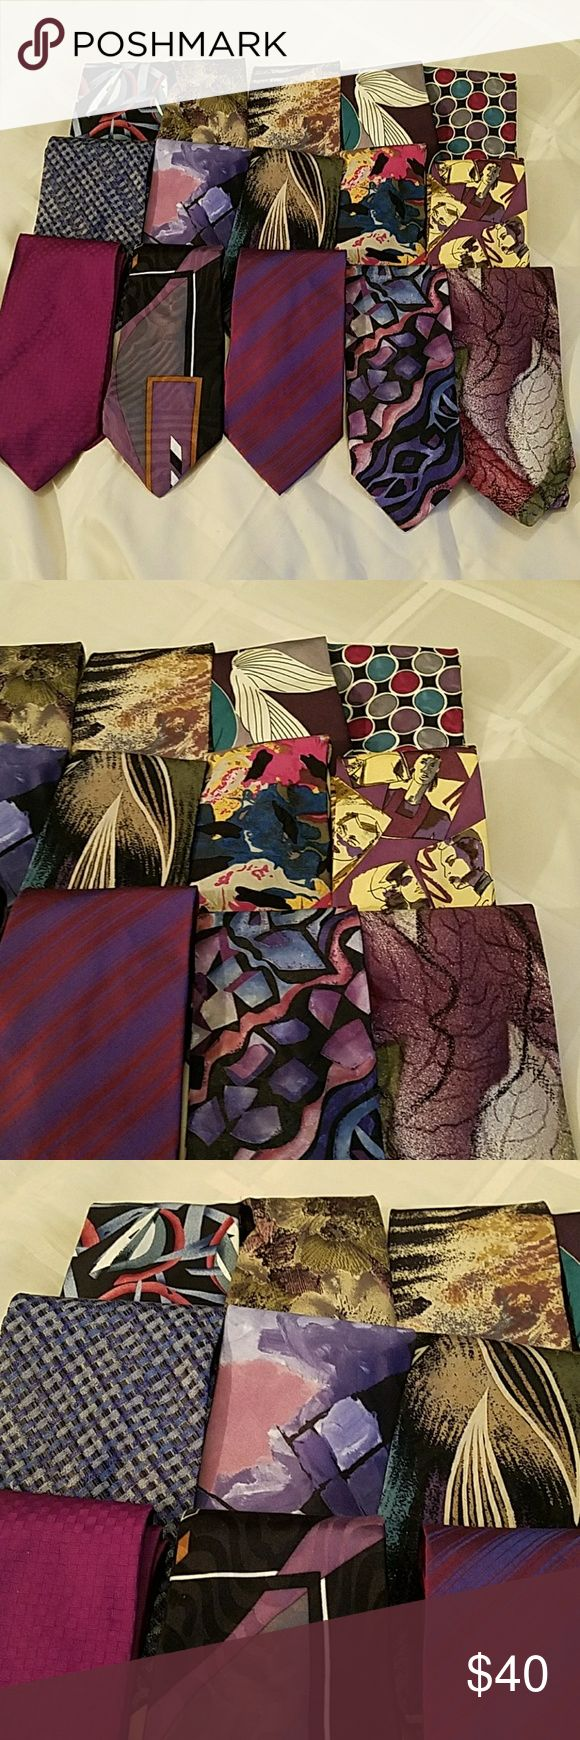 Lot of 15 Ties Pink, blue and purples. Various designers, all good, wearable condition Accessories Ties